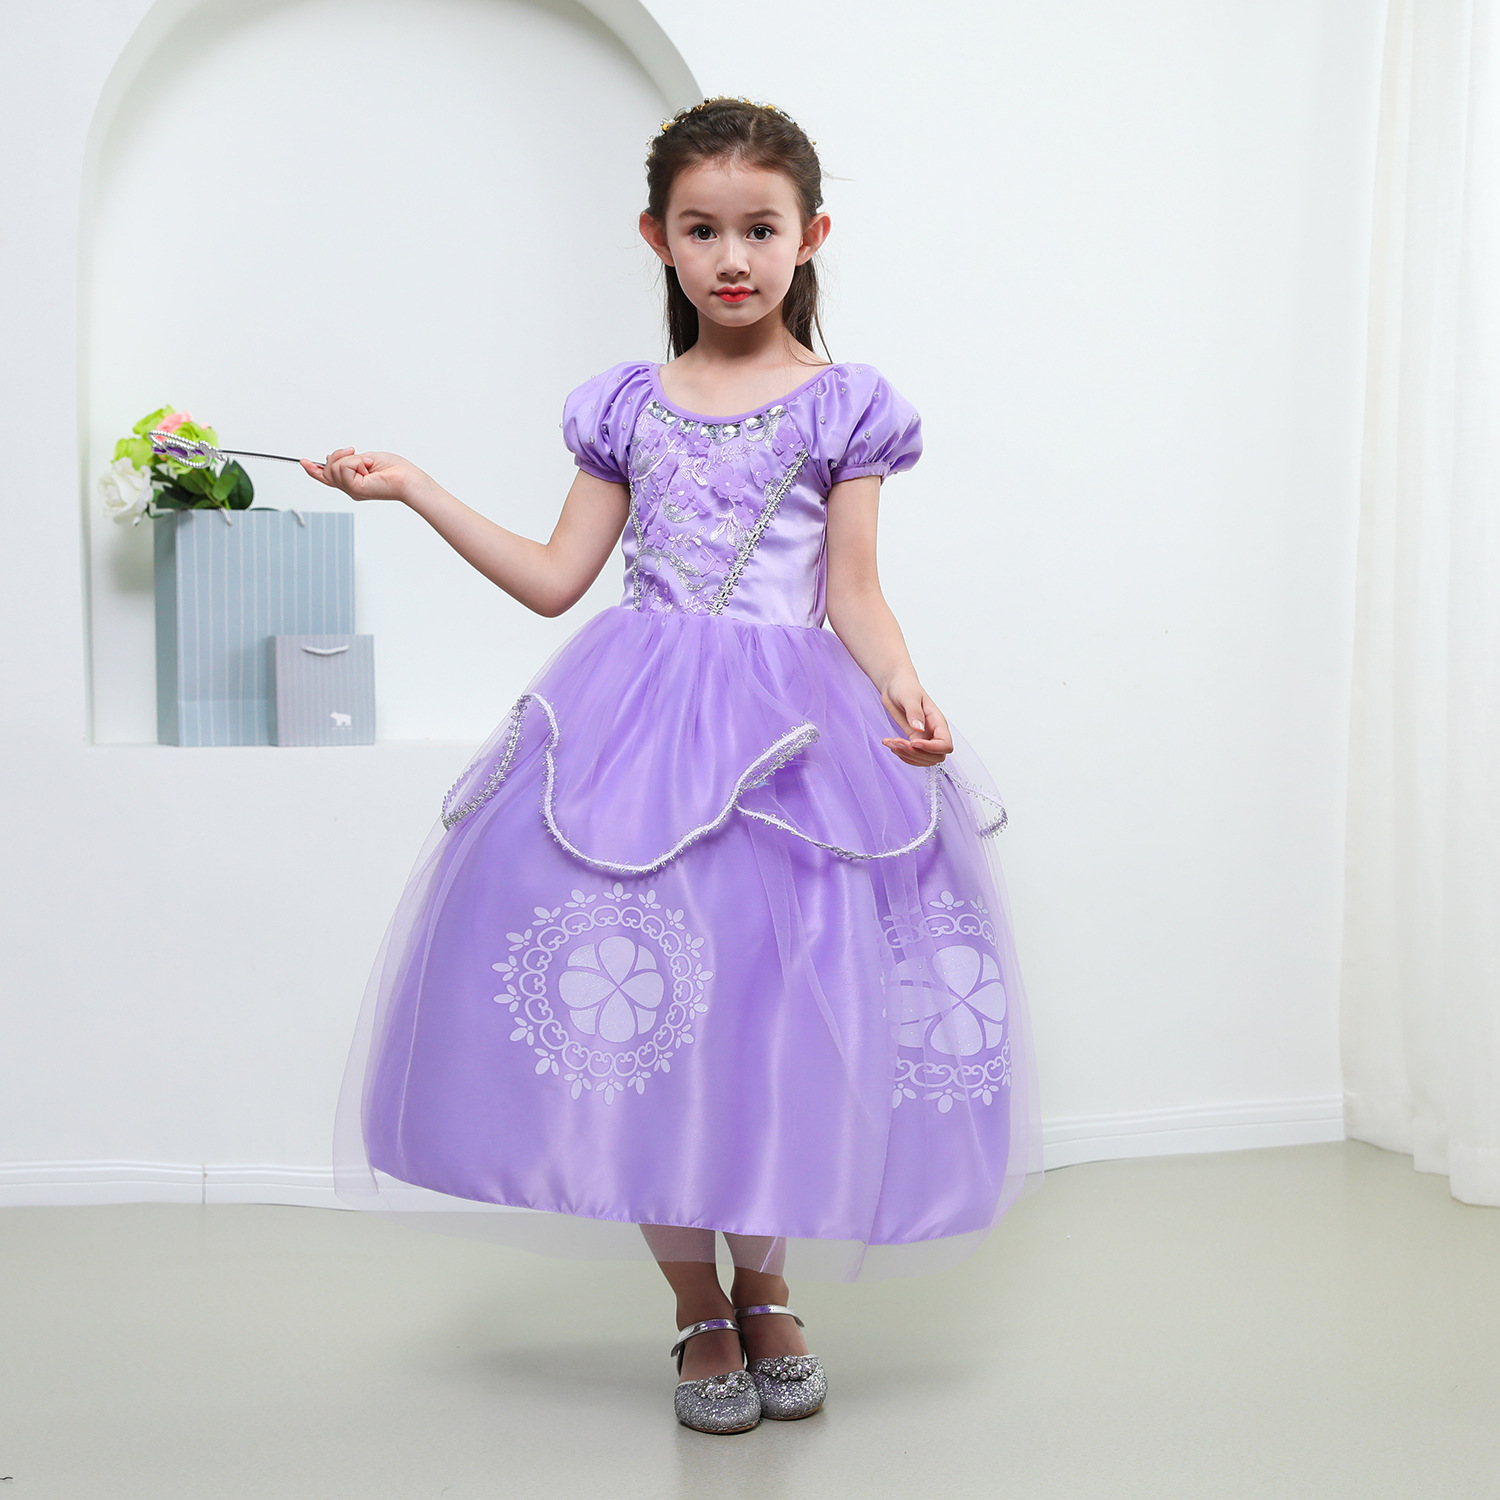 Kids Girls Princess Sofia Rapunzel Dresses Gown Long Party Dress Children Clothing Christmas Cosplay Costume Masquerade 3-12 Yr